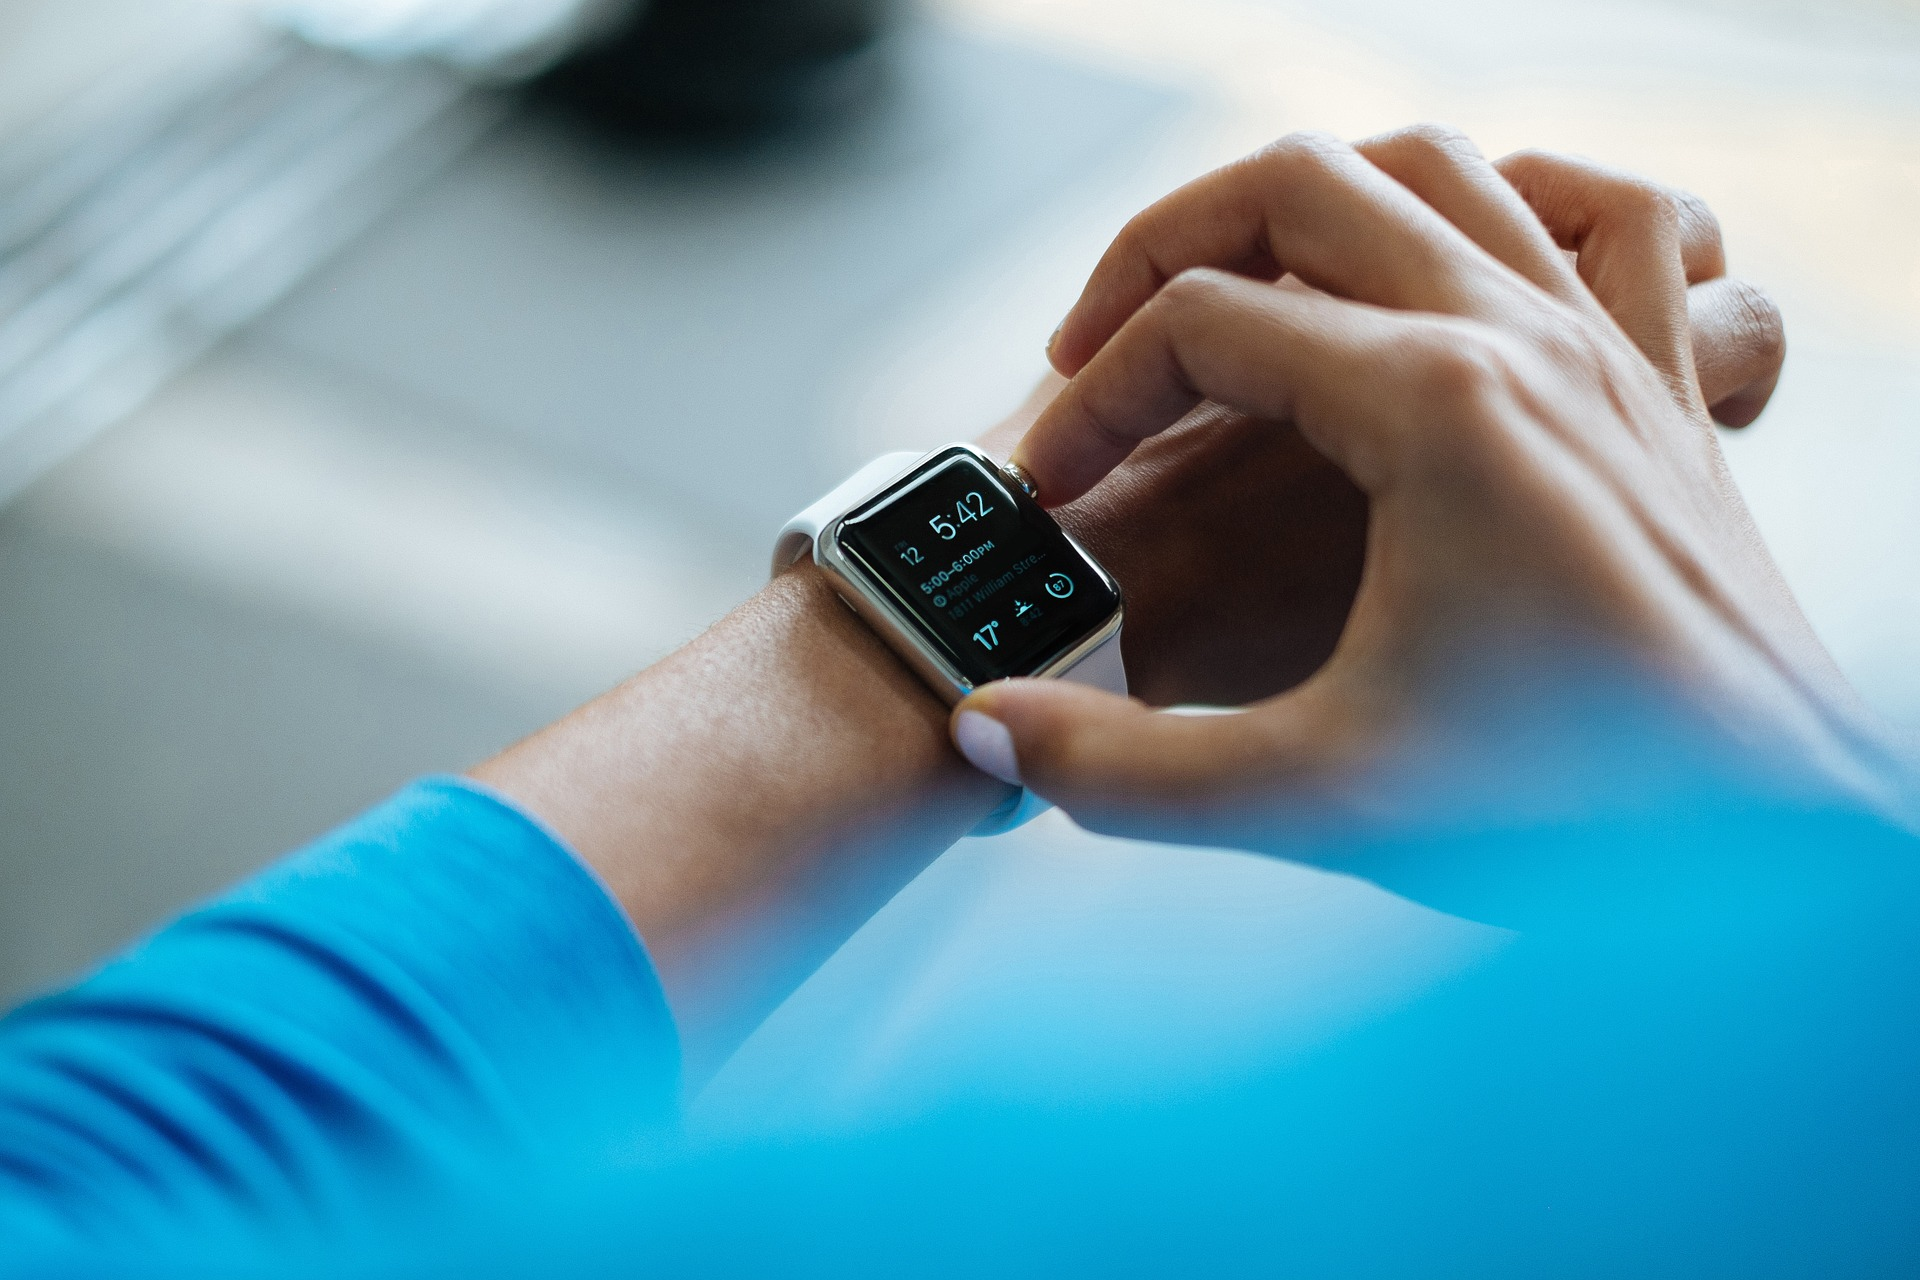 Time To Keep a SmartWatch on Your Health